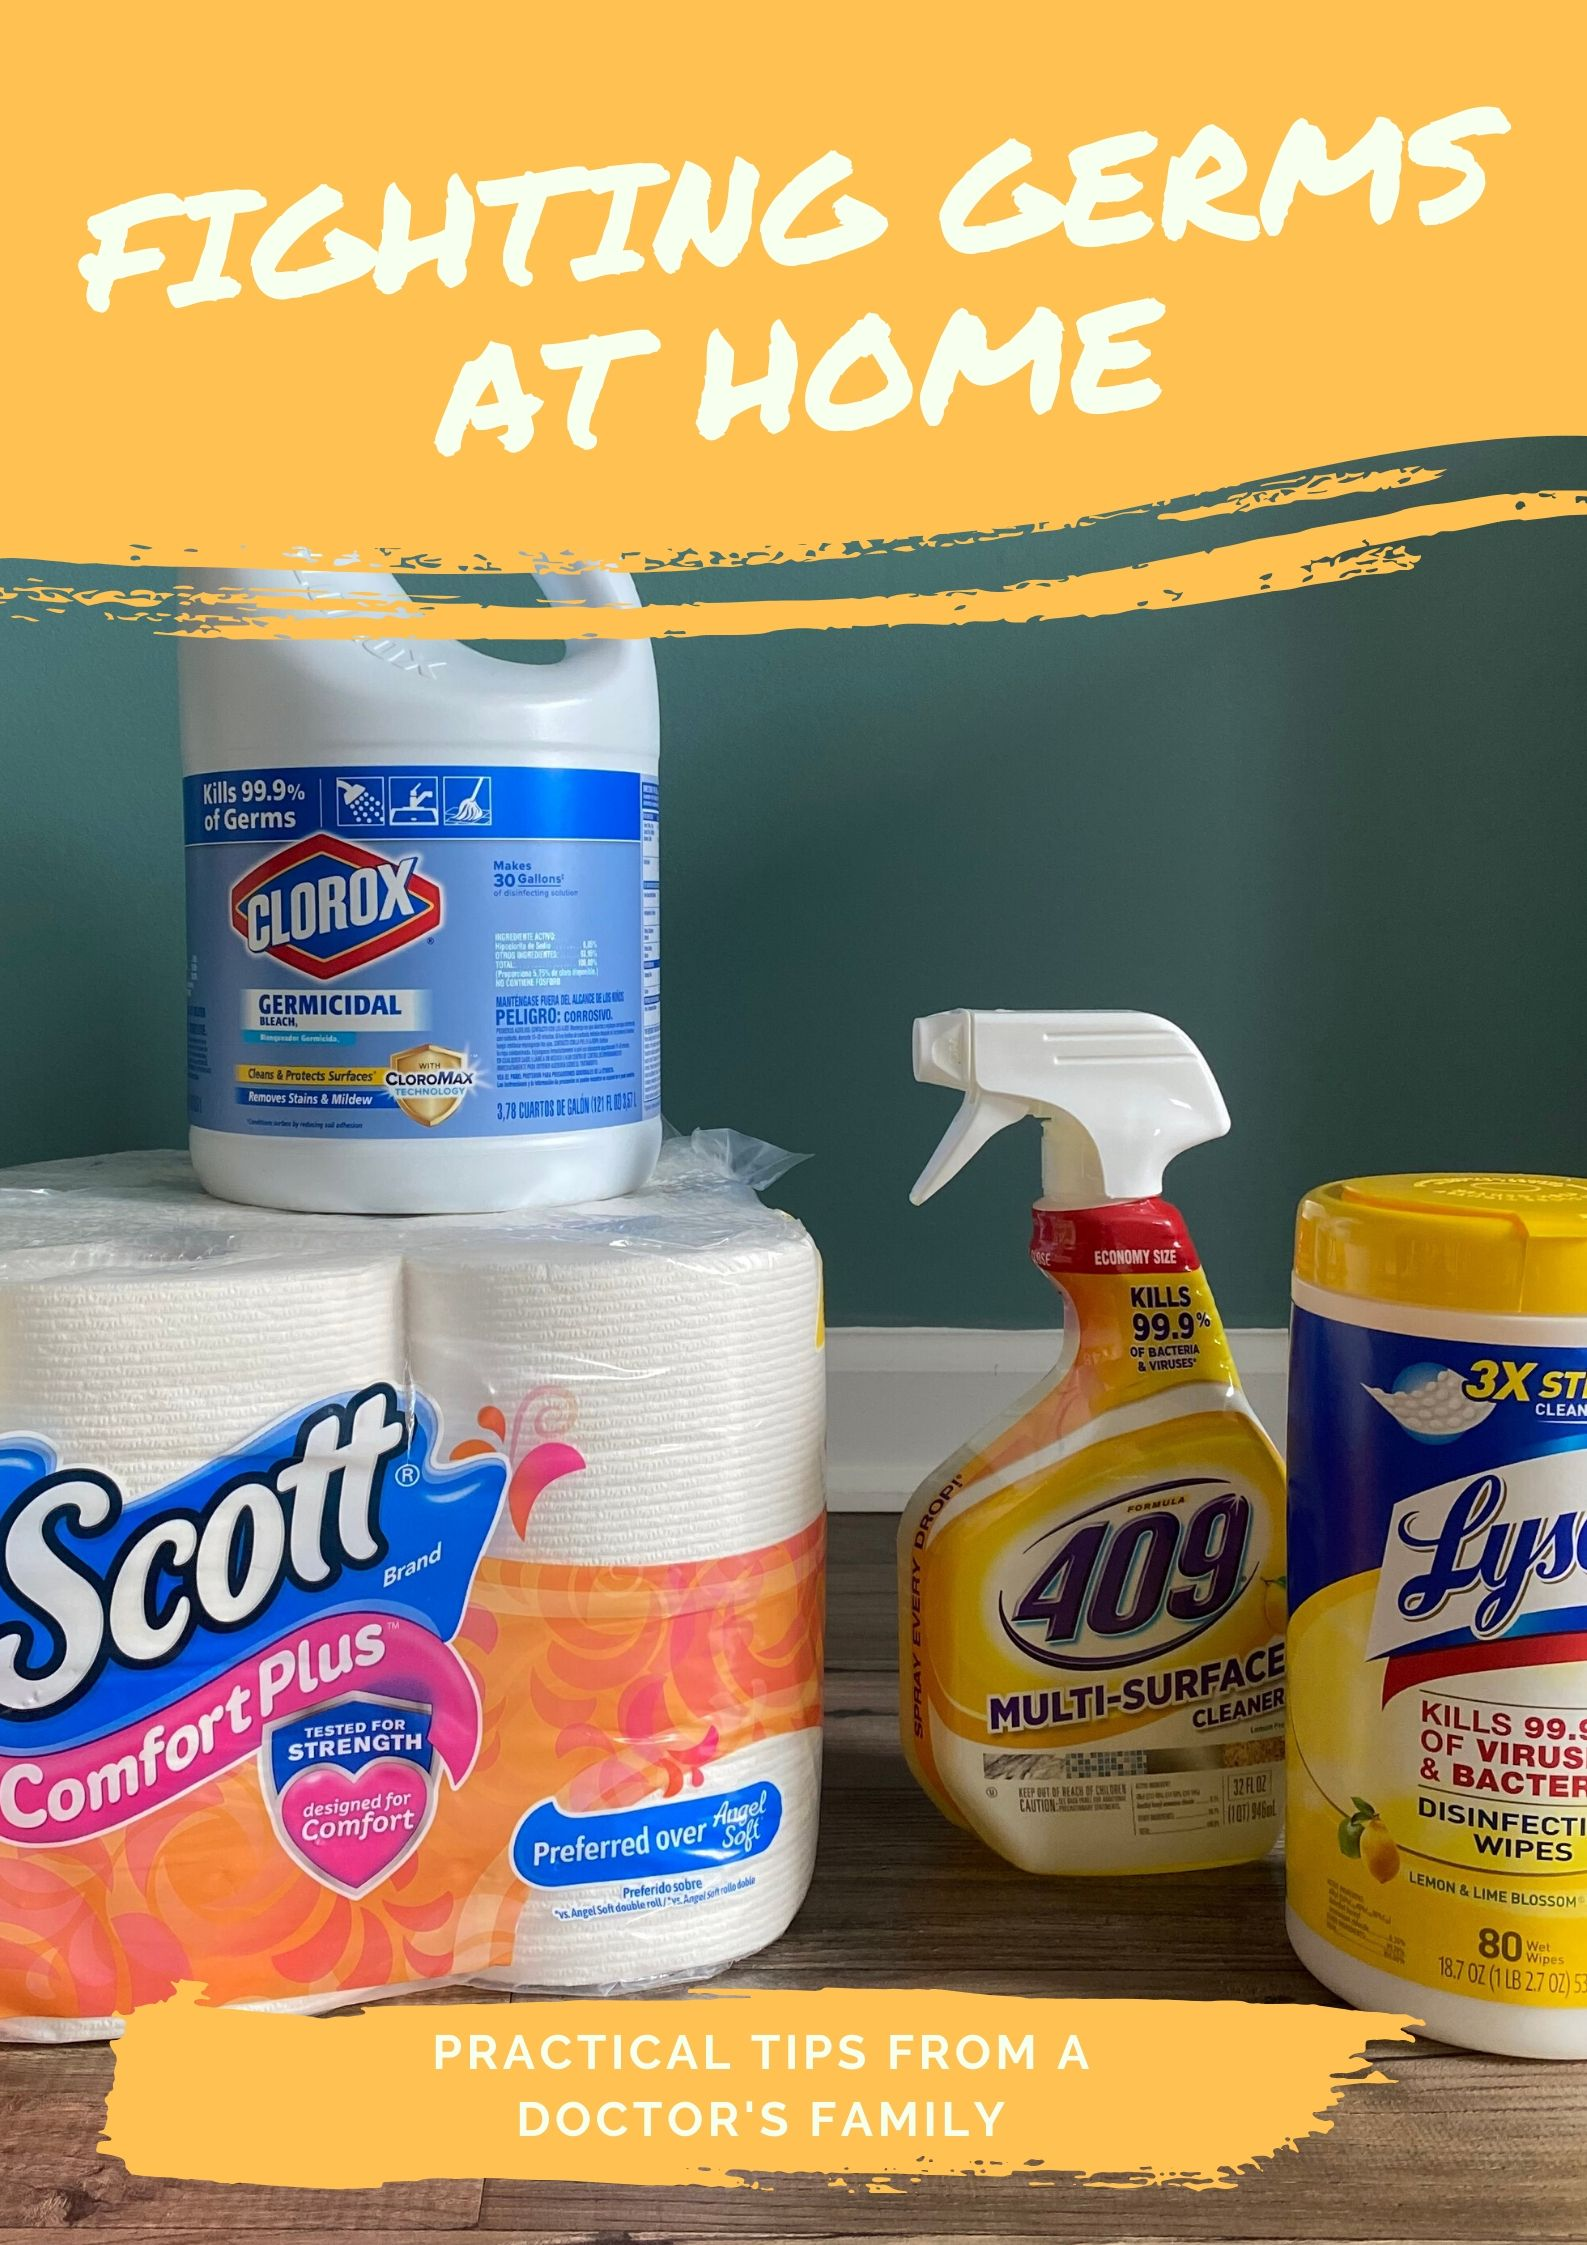 Wondering how to fight germs at home? Worried about viruses or how to keep the kids healthy? I've been married to a family doctor for 30 years -- and we rarely get sick. This is what we do to keep germs at bay in our house. I hope these practical tips help you!